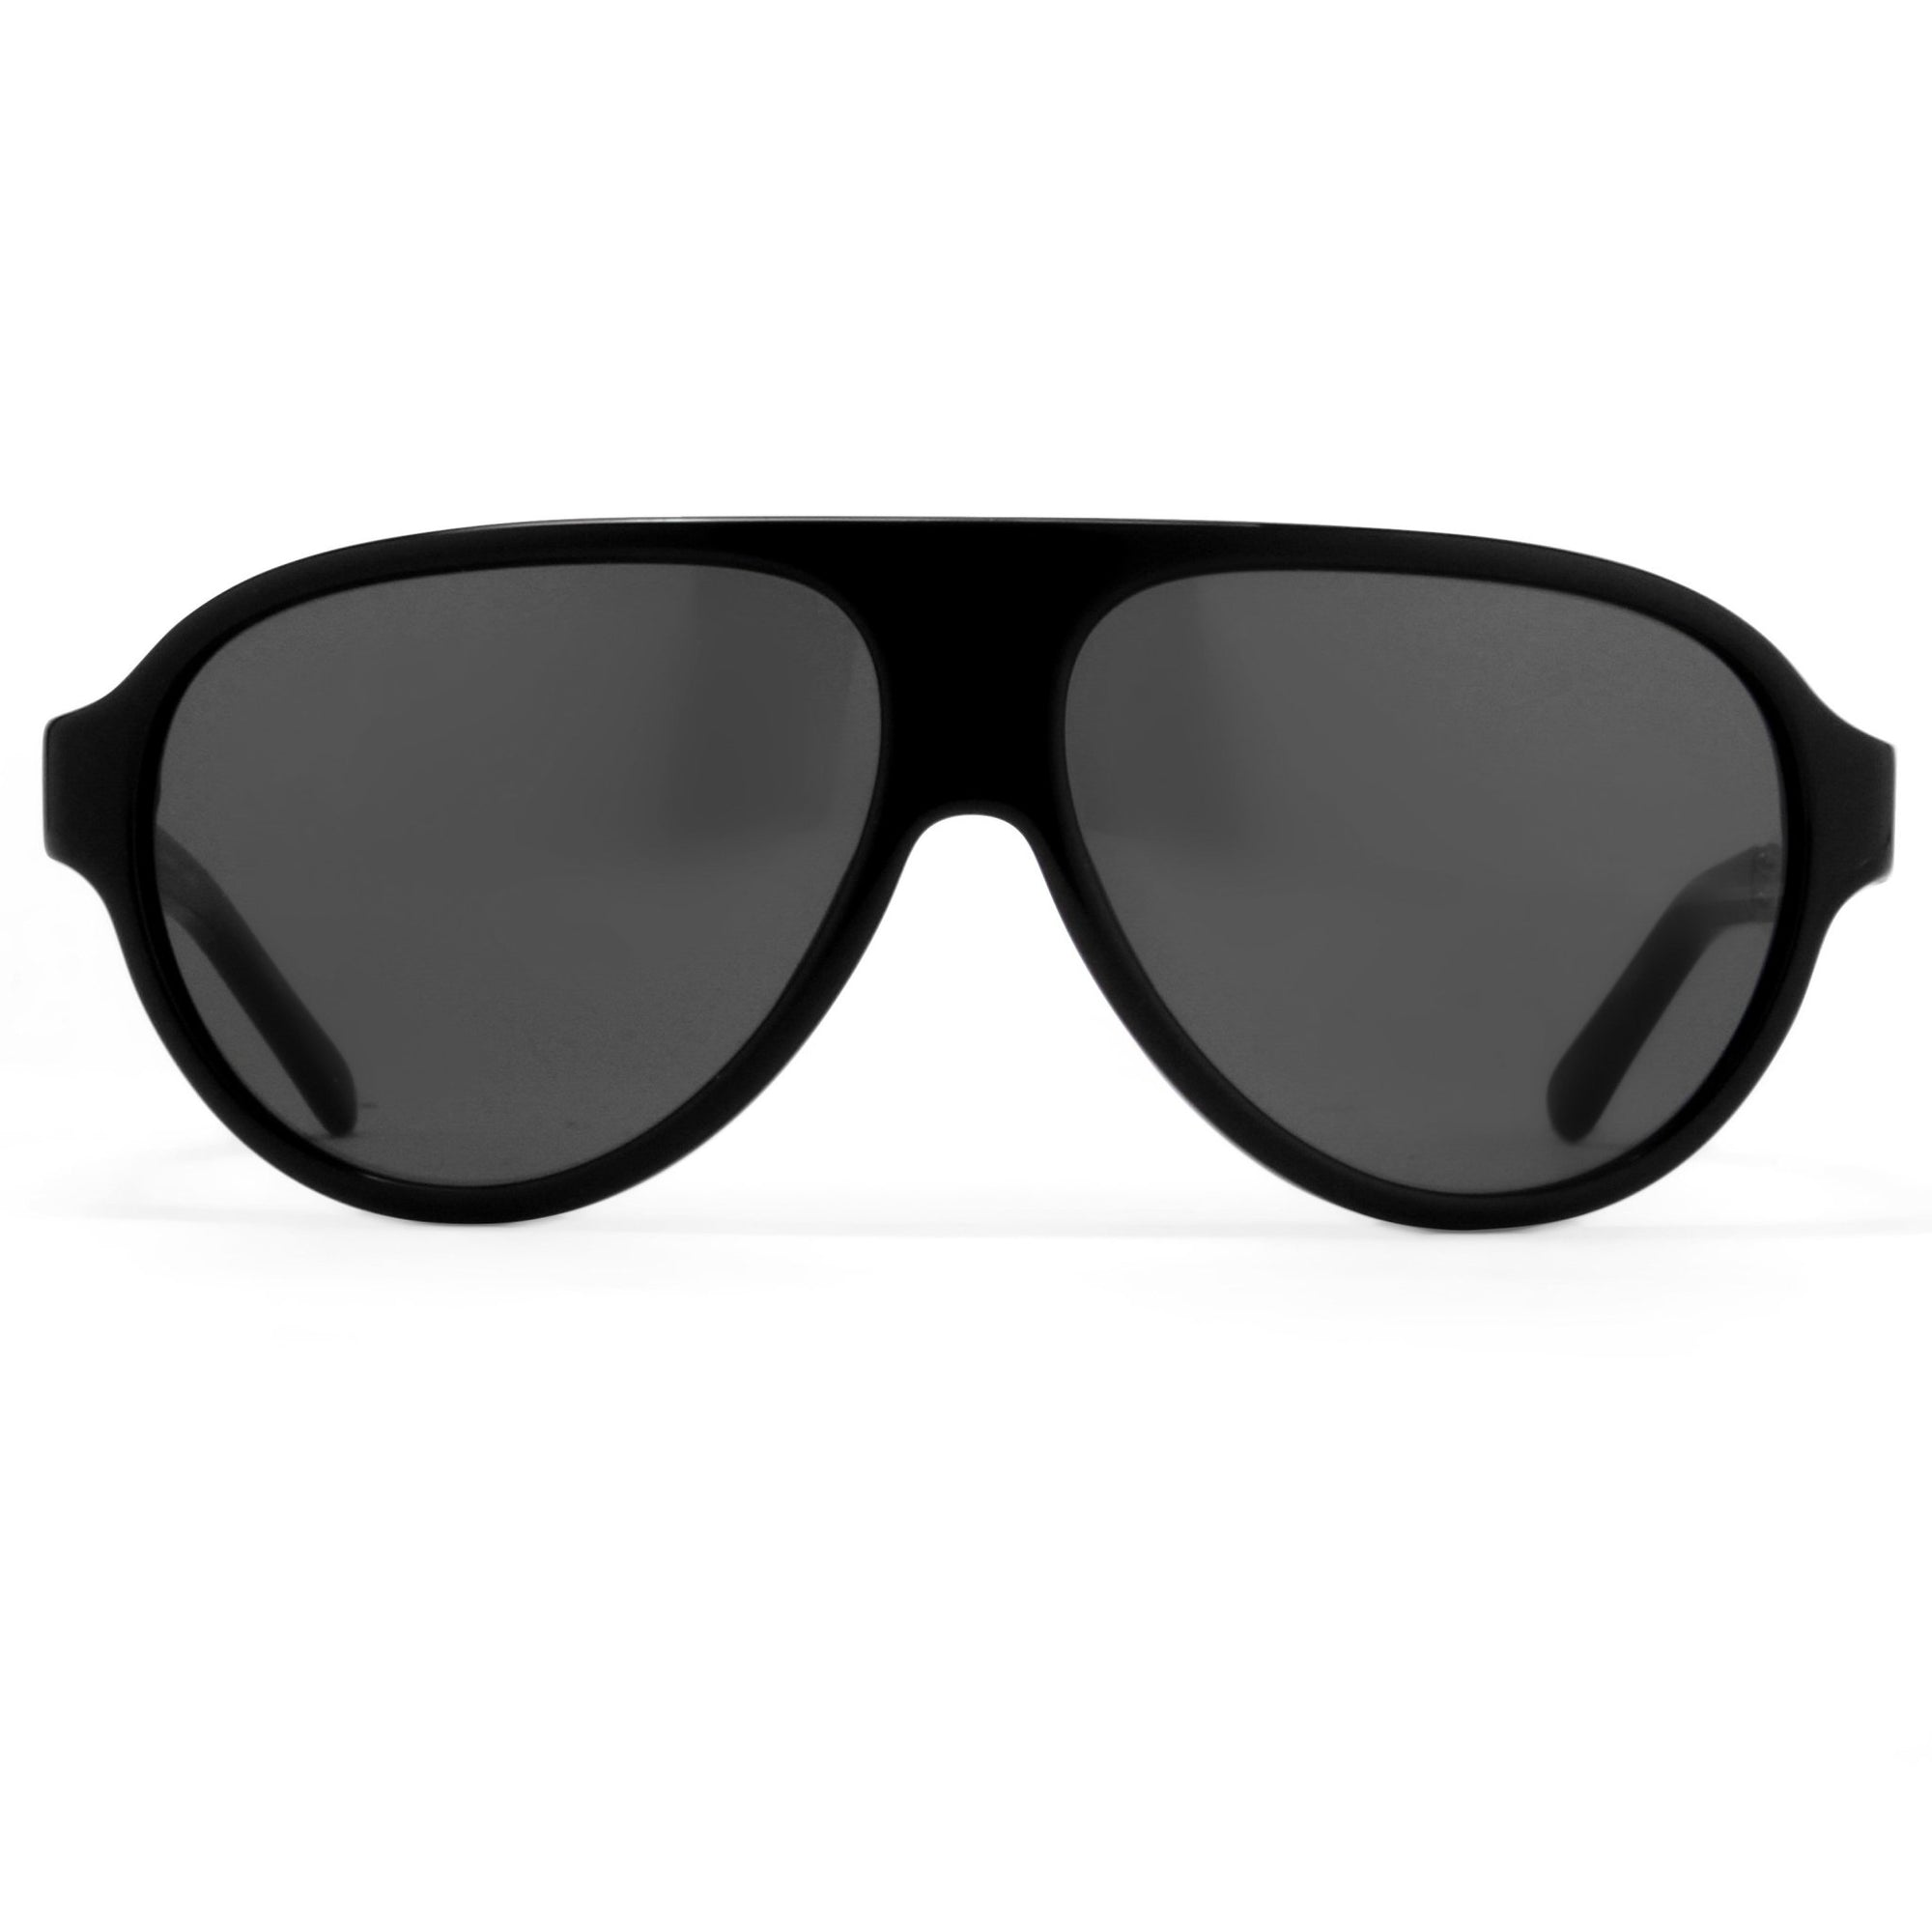 Prabal Gurung Sunglasses Unisex Aviator Black Acetate CAT3 Grey Lenses PG16C1SUN - Watches & Crystals